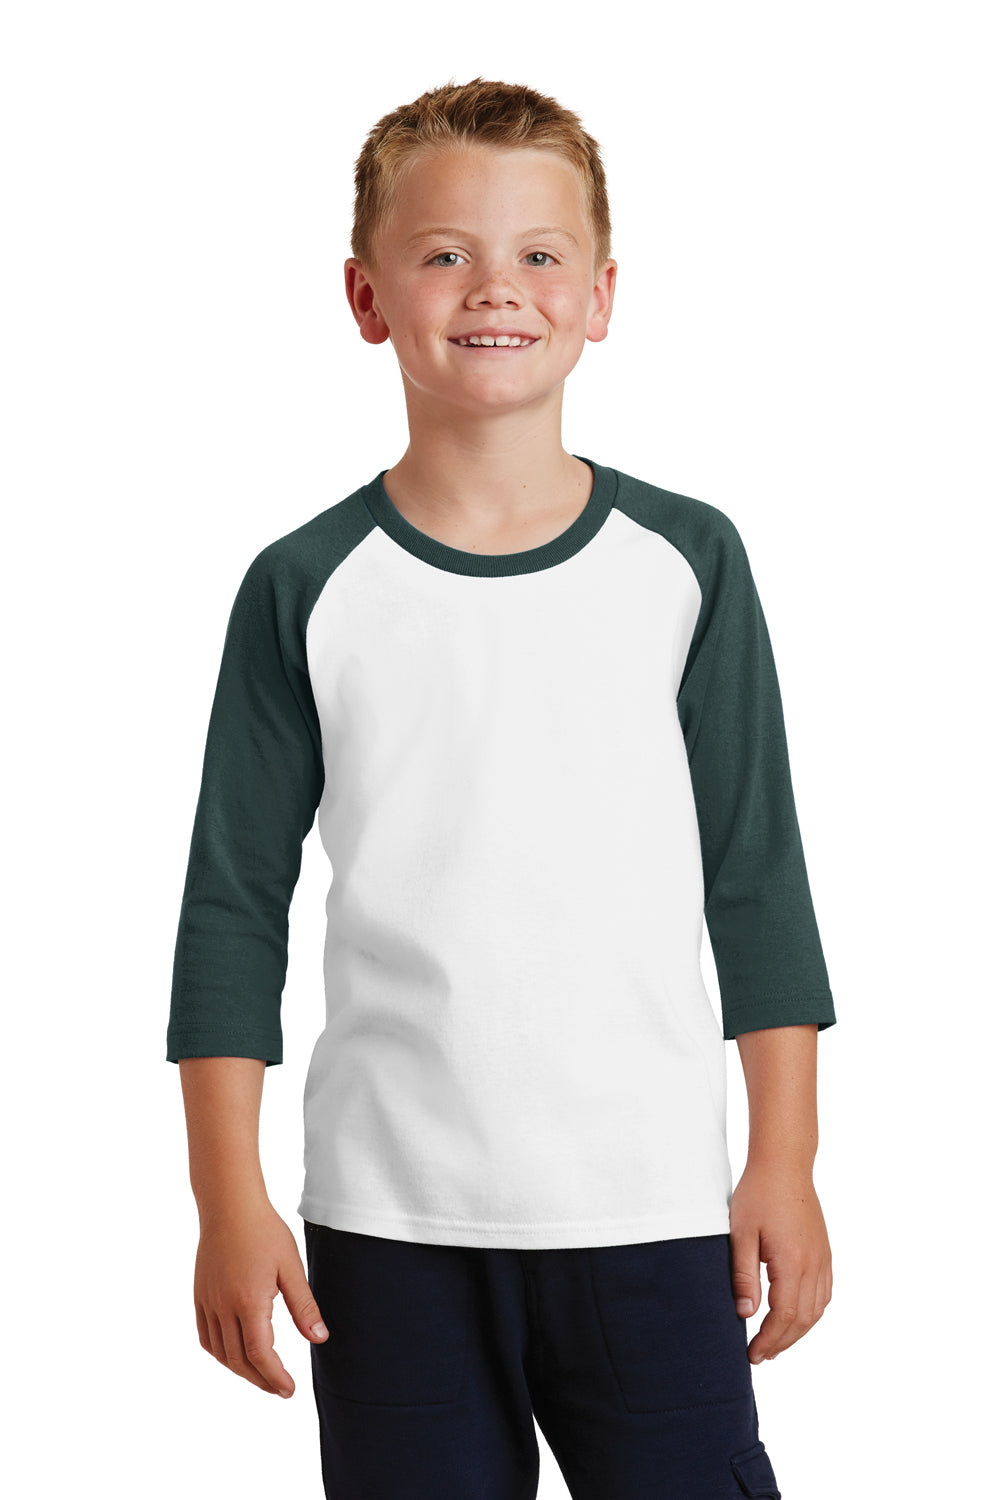 Port & Company PC55YRS Youth Core Moisture Wicking 3/4 Sleeve Crewneck T-Shirt White/Dark Green Front